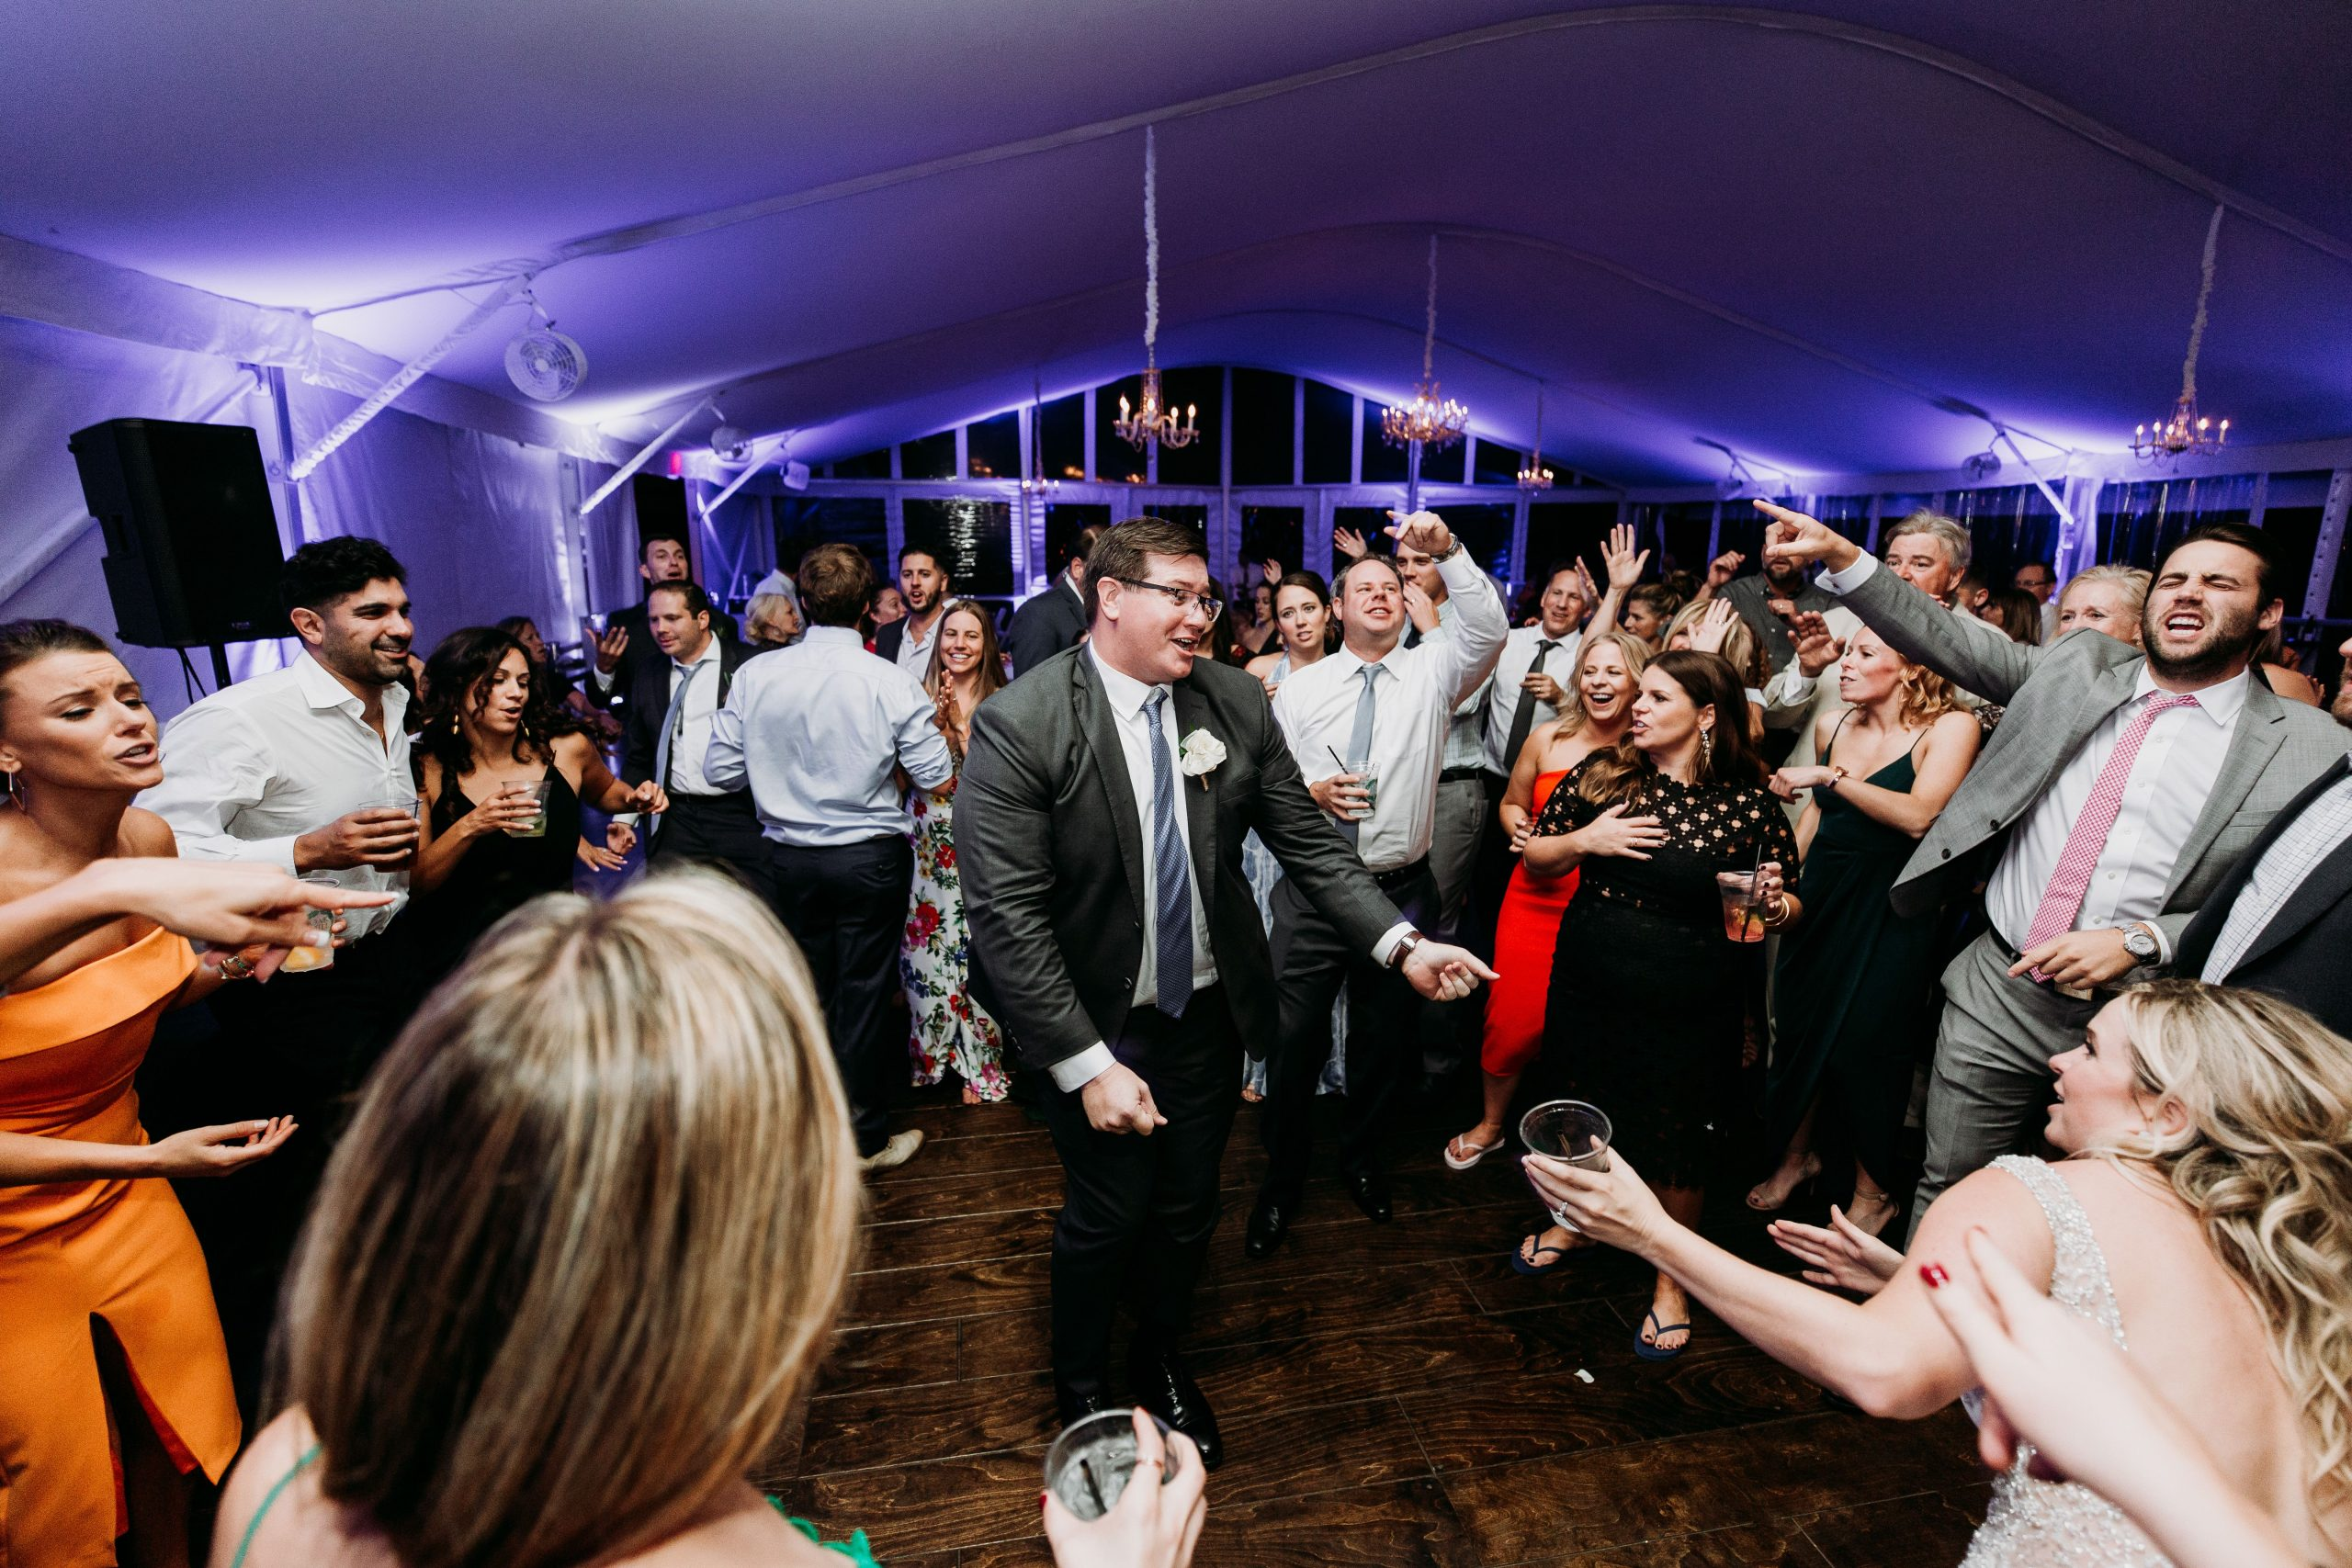 groom in the middle of a circle of people dancing